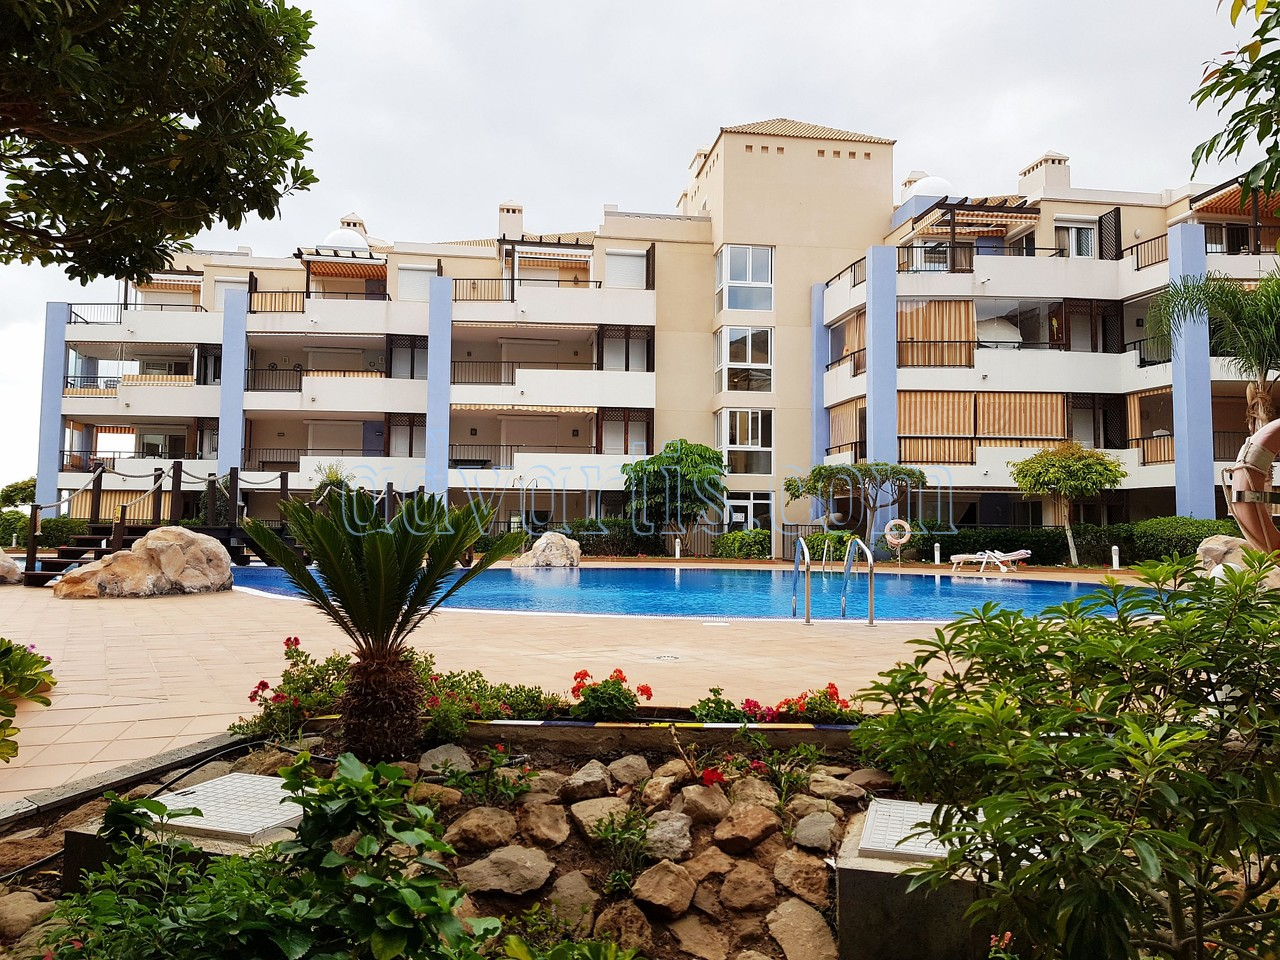 1 bedroom apartment for sale in Los Cristianos, Tenerife, Spain